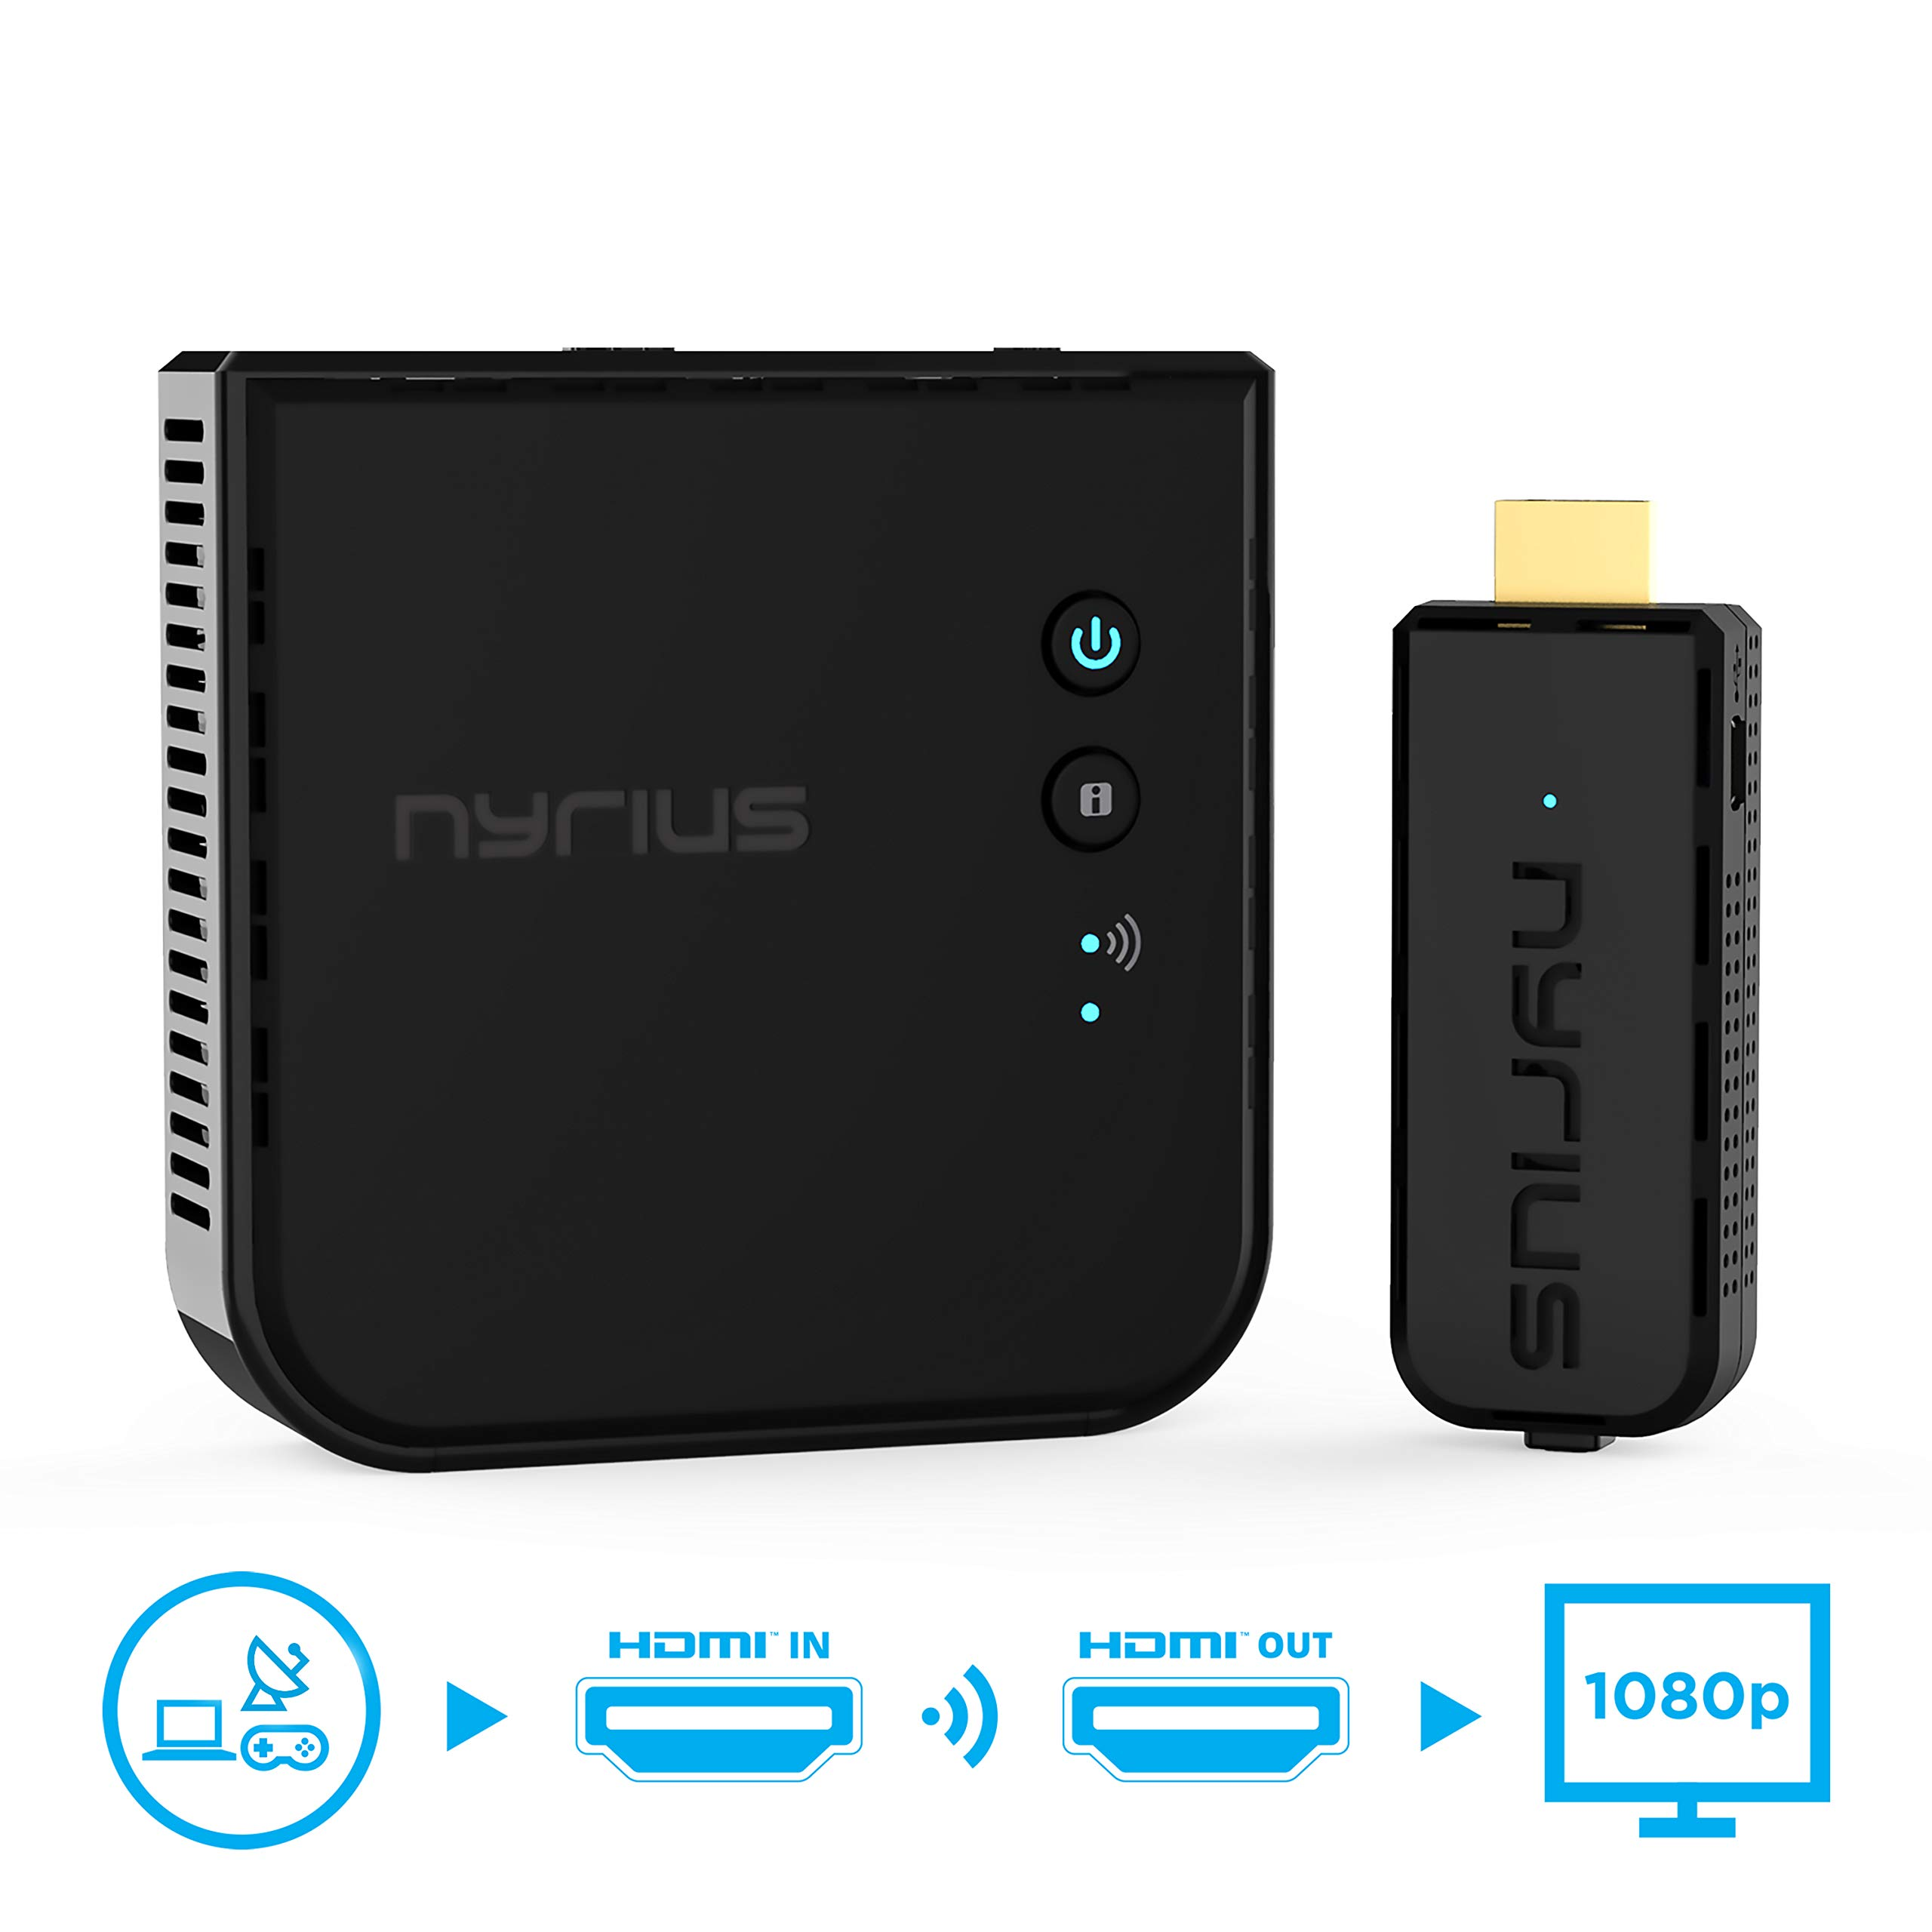 nyrius-aries-prime-wireless-video-hdmi-transmitter-receiver-for-streaming-hd-1080p-3d-video-digital-audio-from-laptop-pc-cable-netflix-youtube-ps-to-hdtvprojector-npcs549